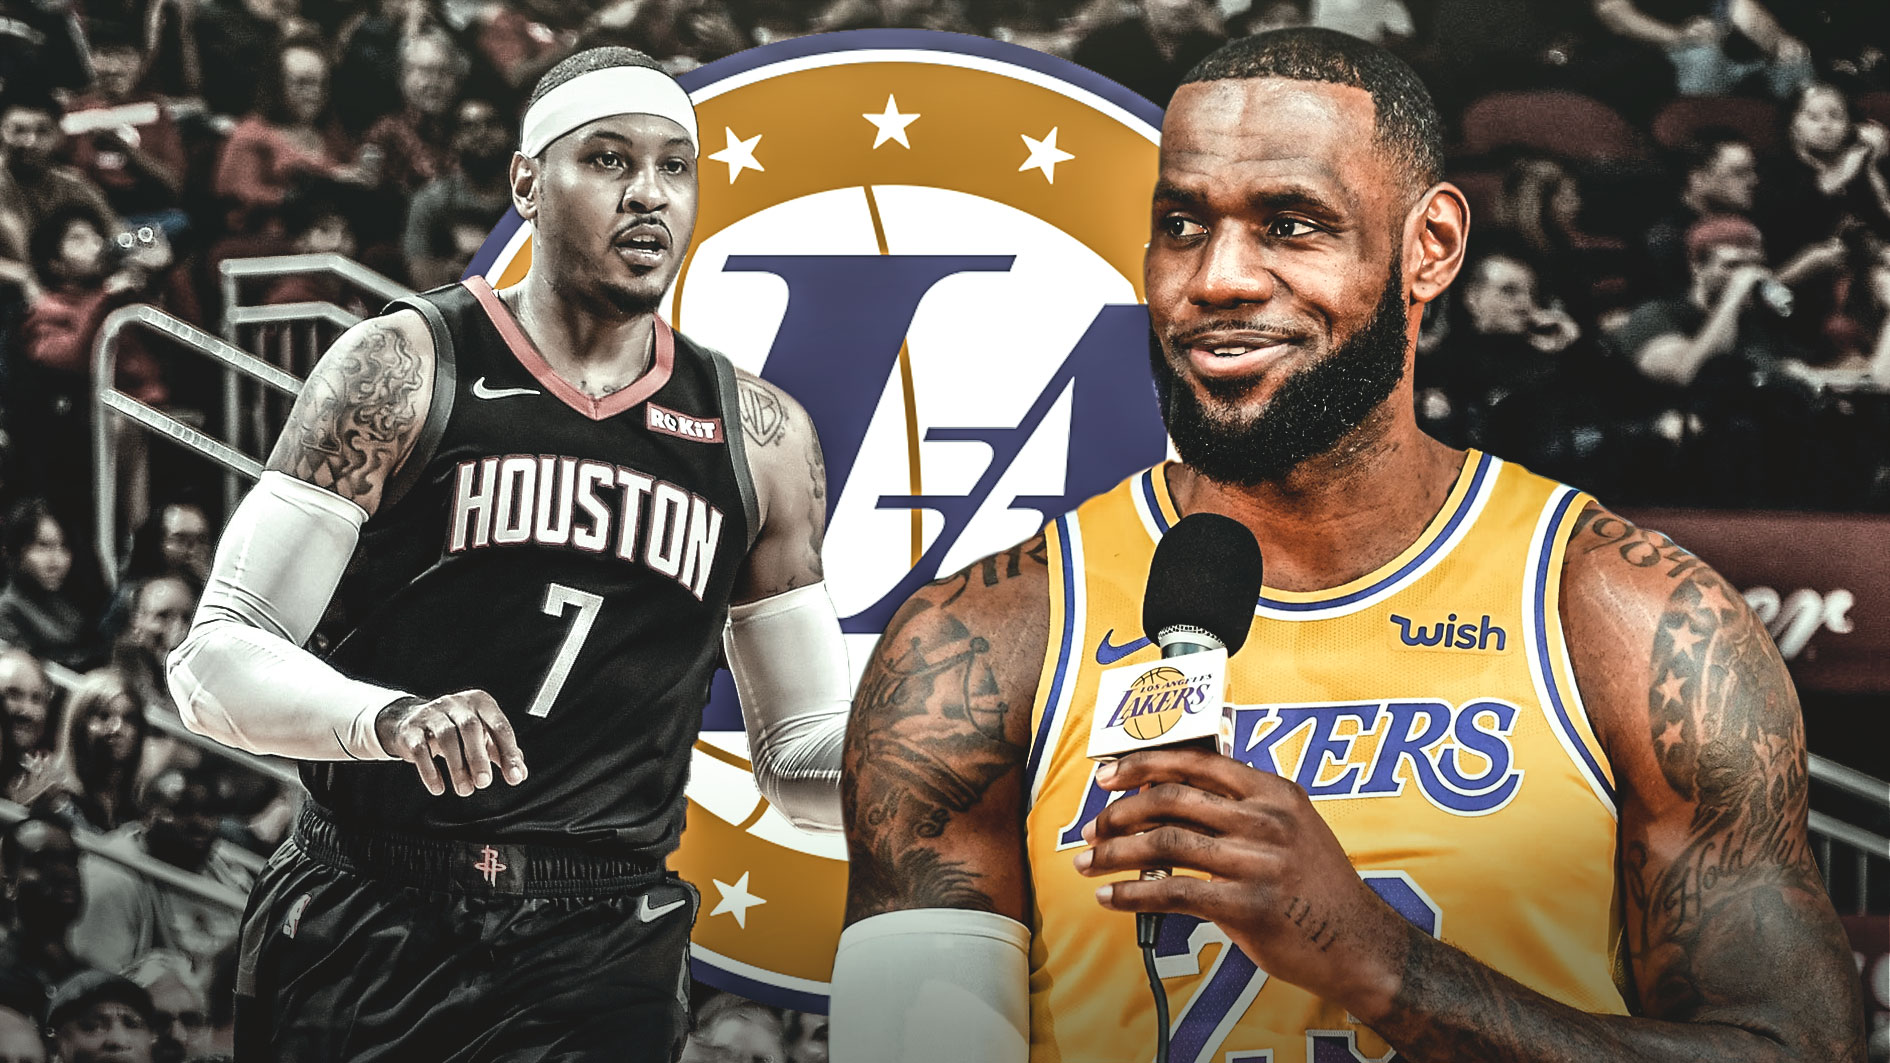 c01ba11df6d7 Lakers have no interest in Carmelo Anthony trade despite LeBron James   desire to add friend